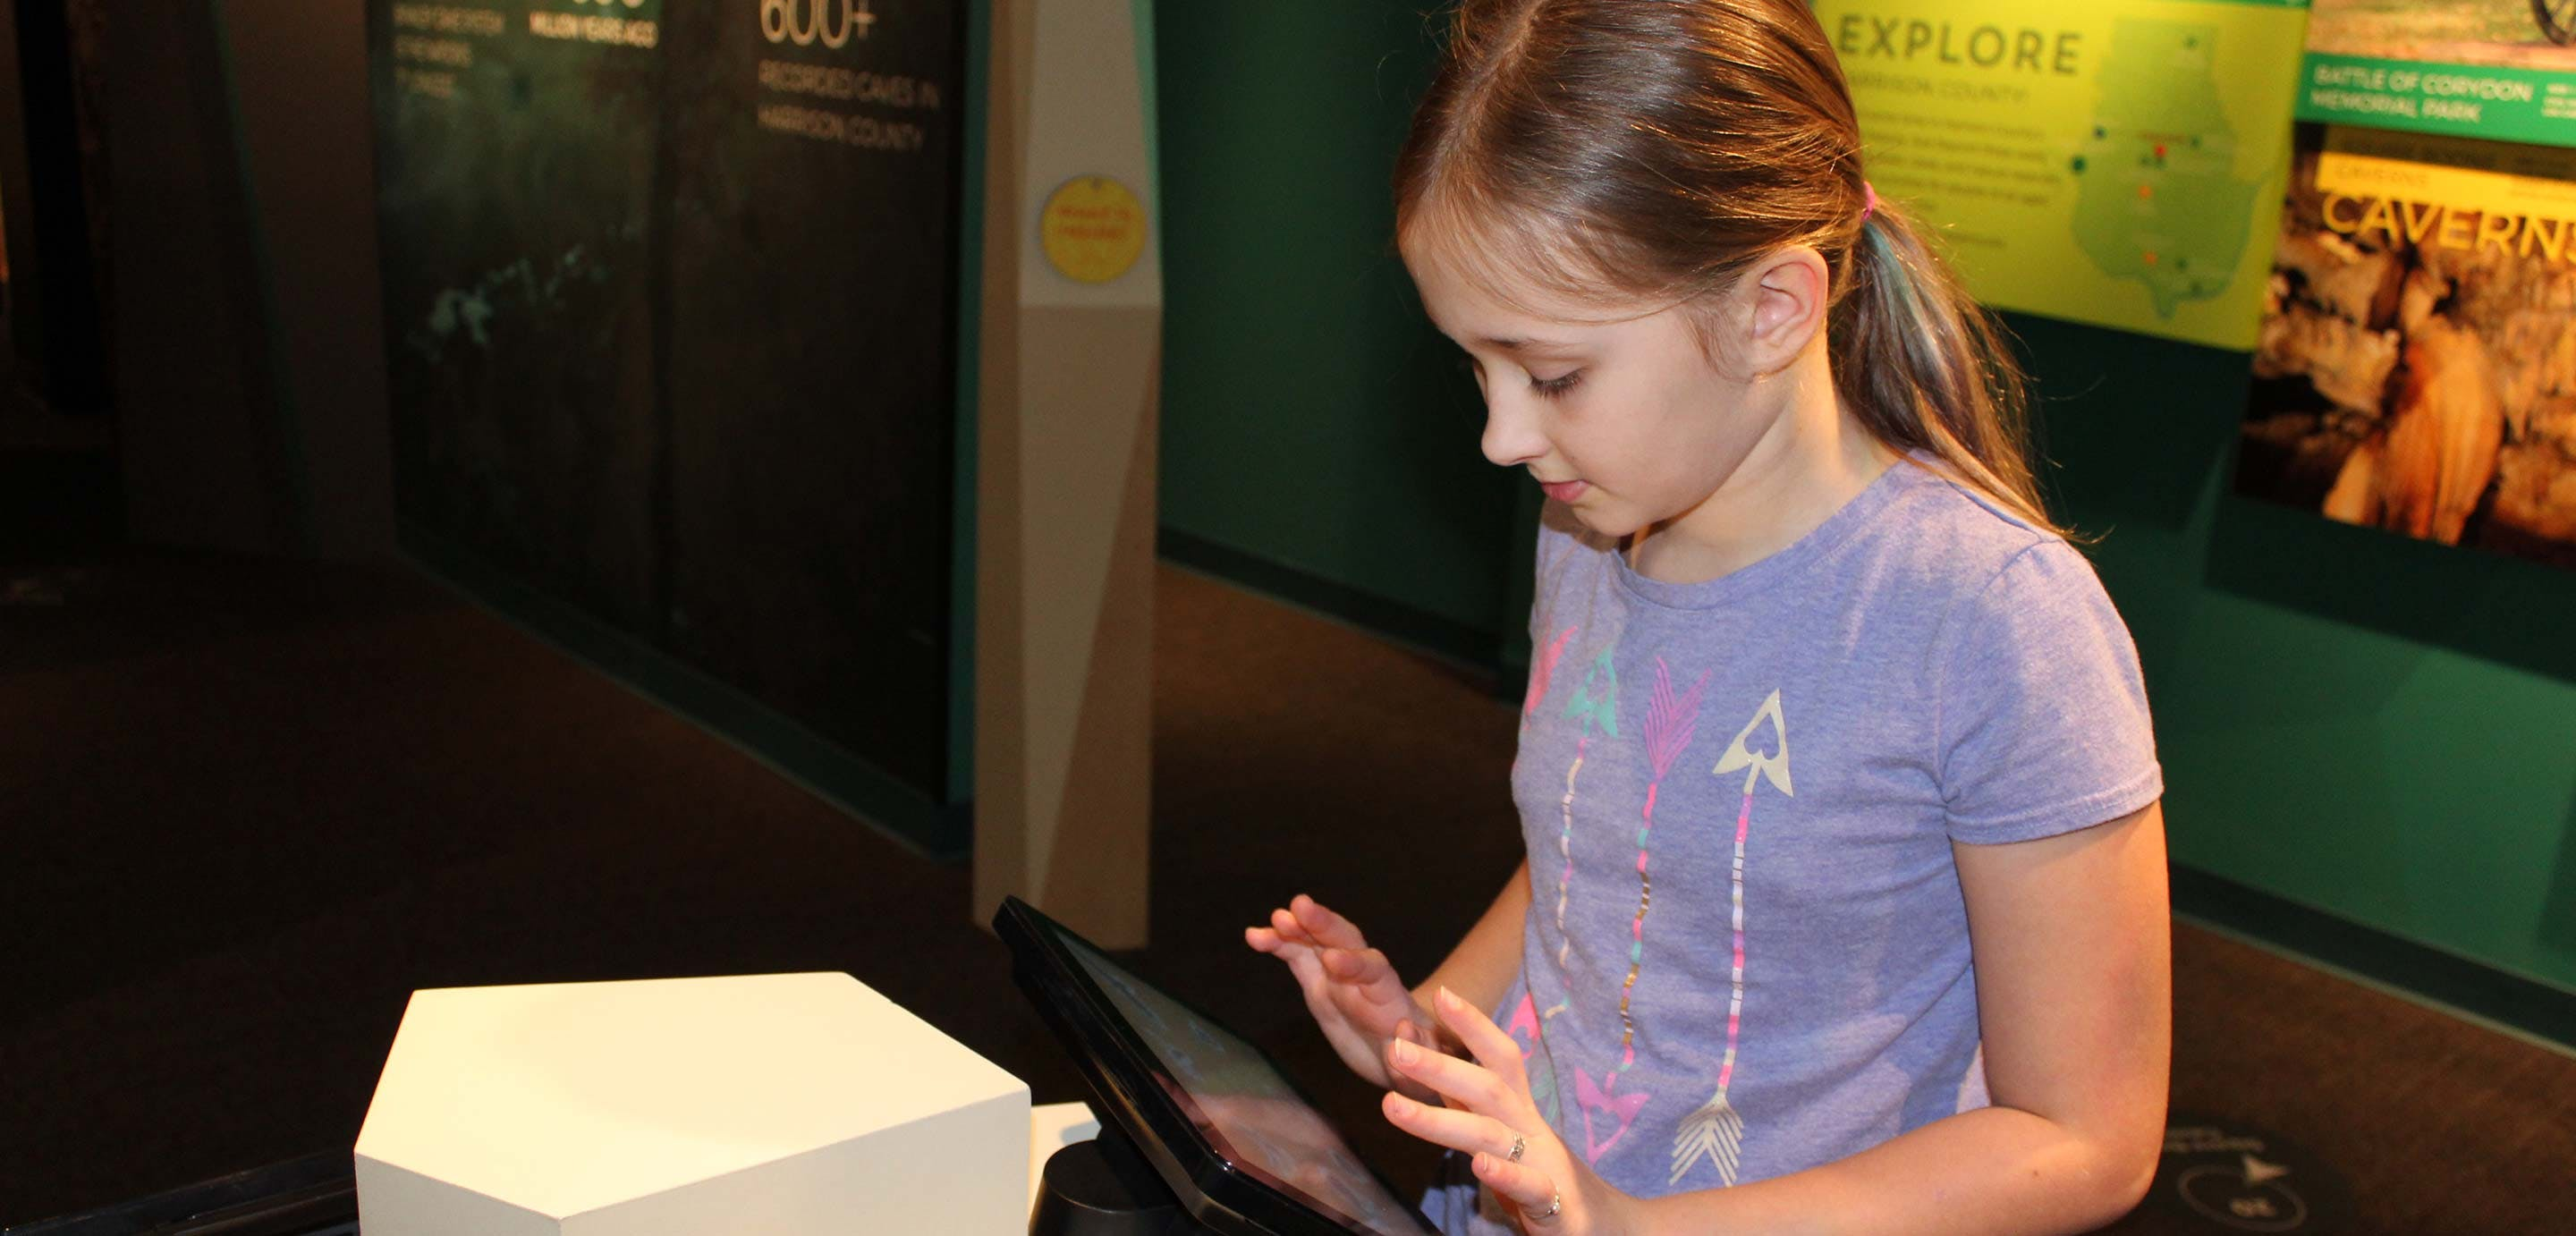 Interactive Touch Exhibits